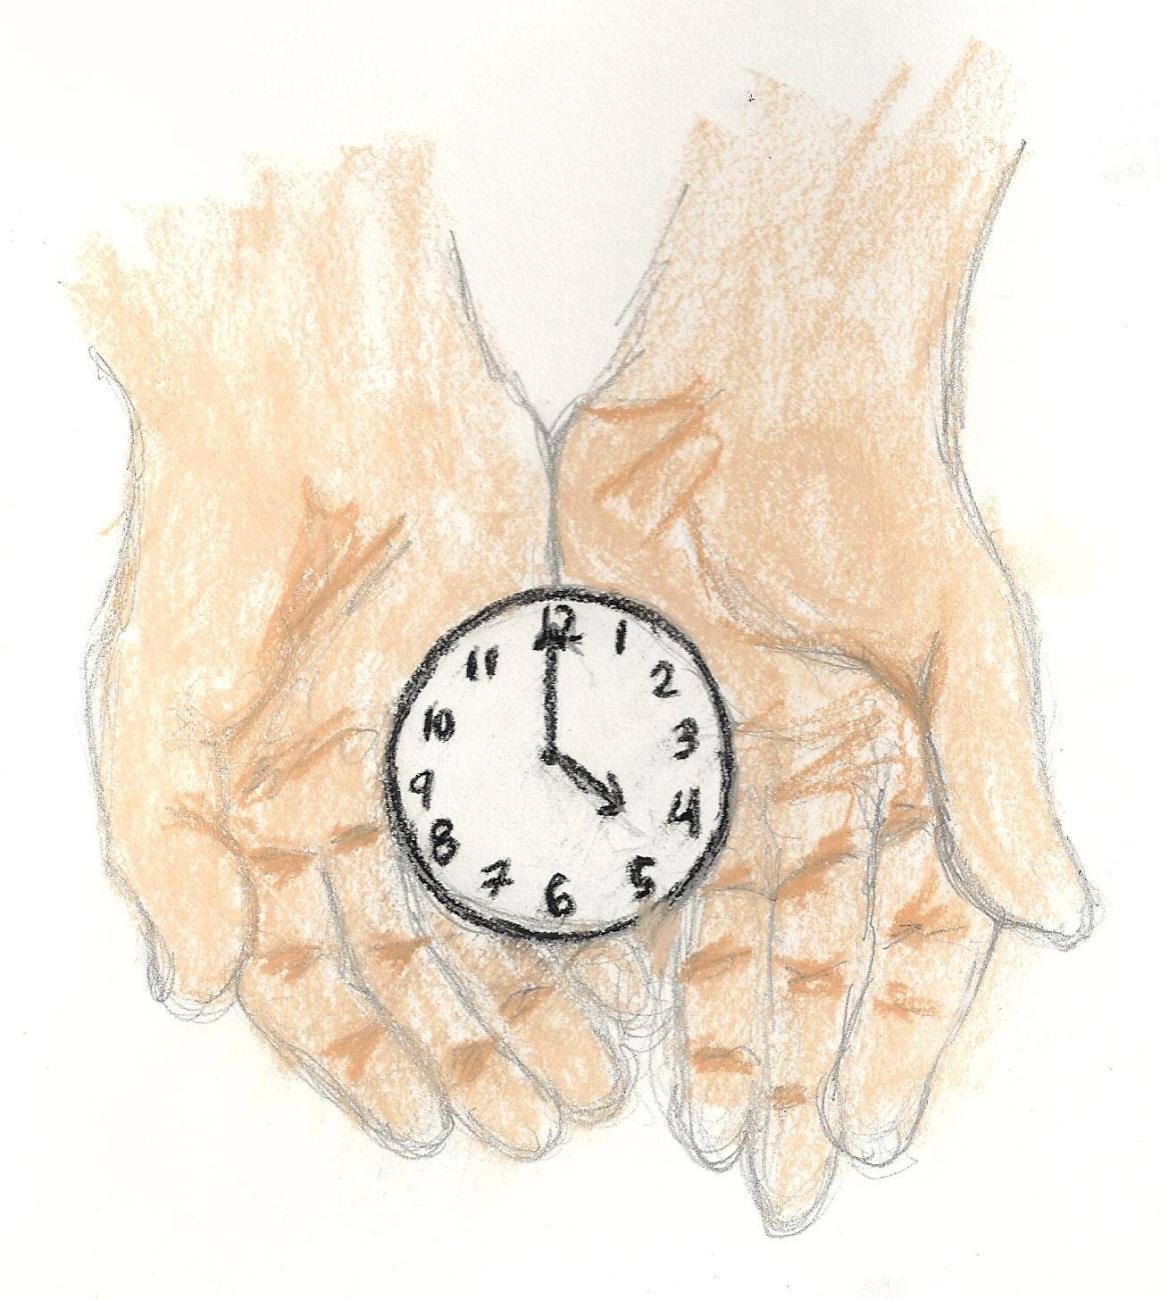 Hands of Time: a poem